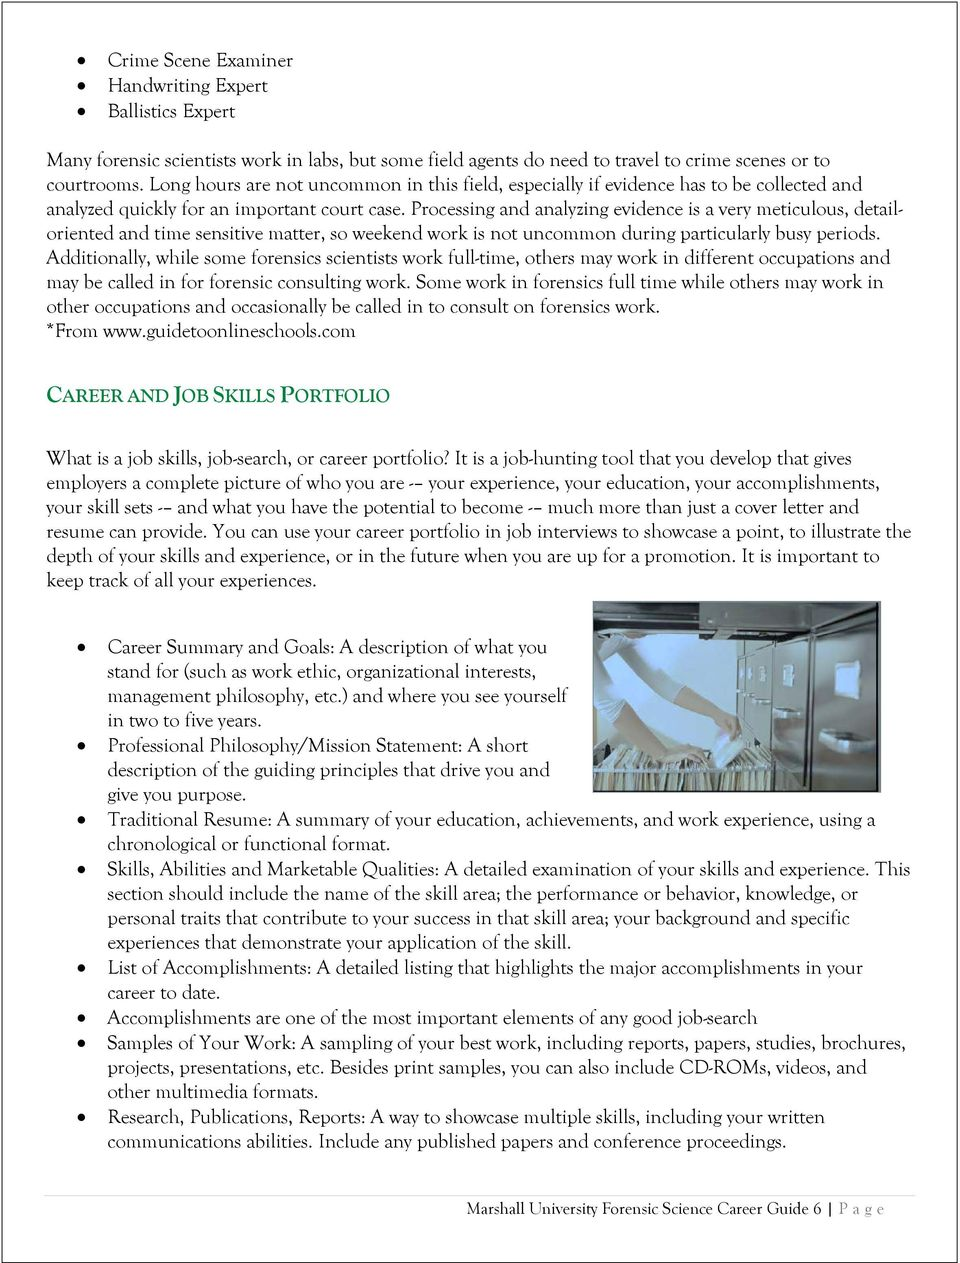 Marshall University Forensic Science Career Guide 6 P age. Processing and  analyzing evidence is a very meticulous, detailoriented and time sensitive  matter, ...